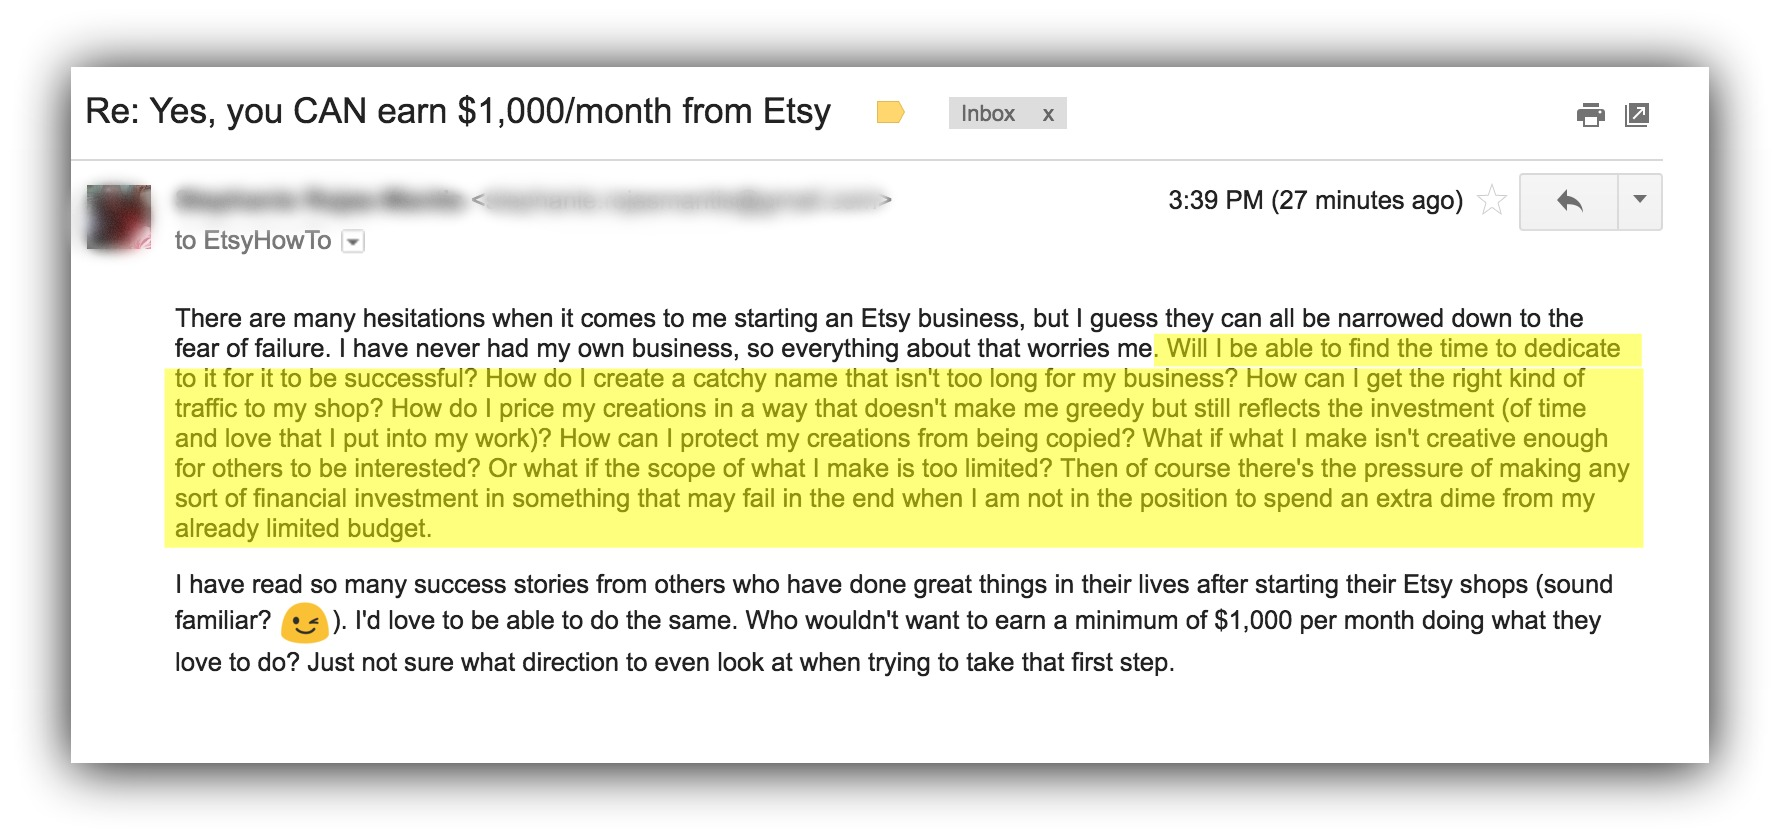 etsy email example